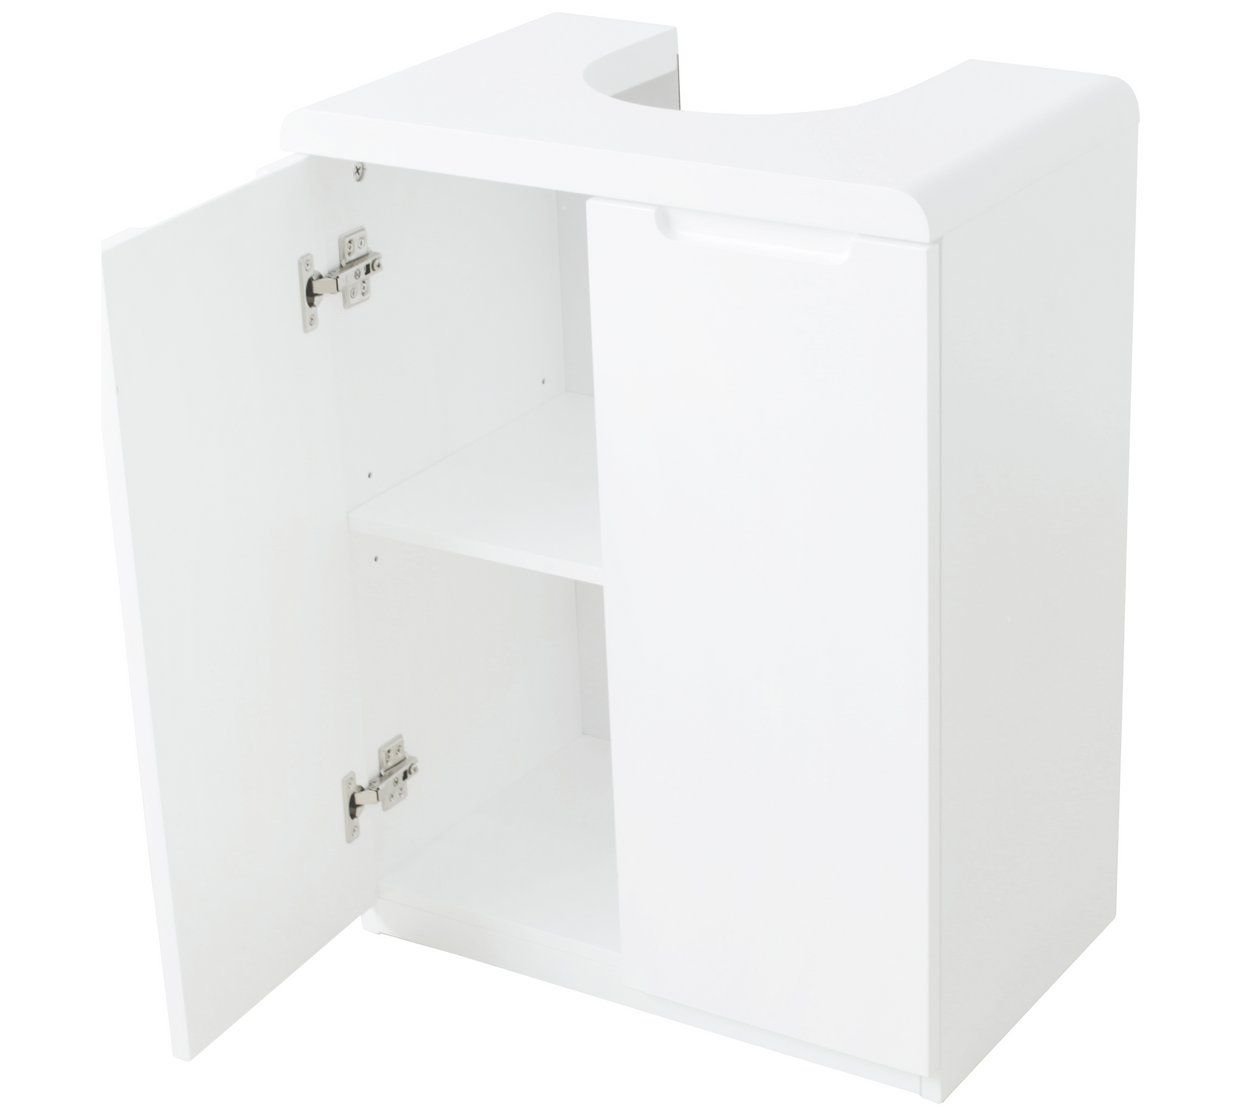 Pleasant Buy Argos Home Curve Under Sink Storage Unit White Home Interior And Landscaping Ologienasavecom